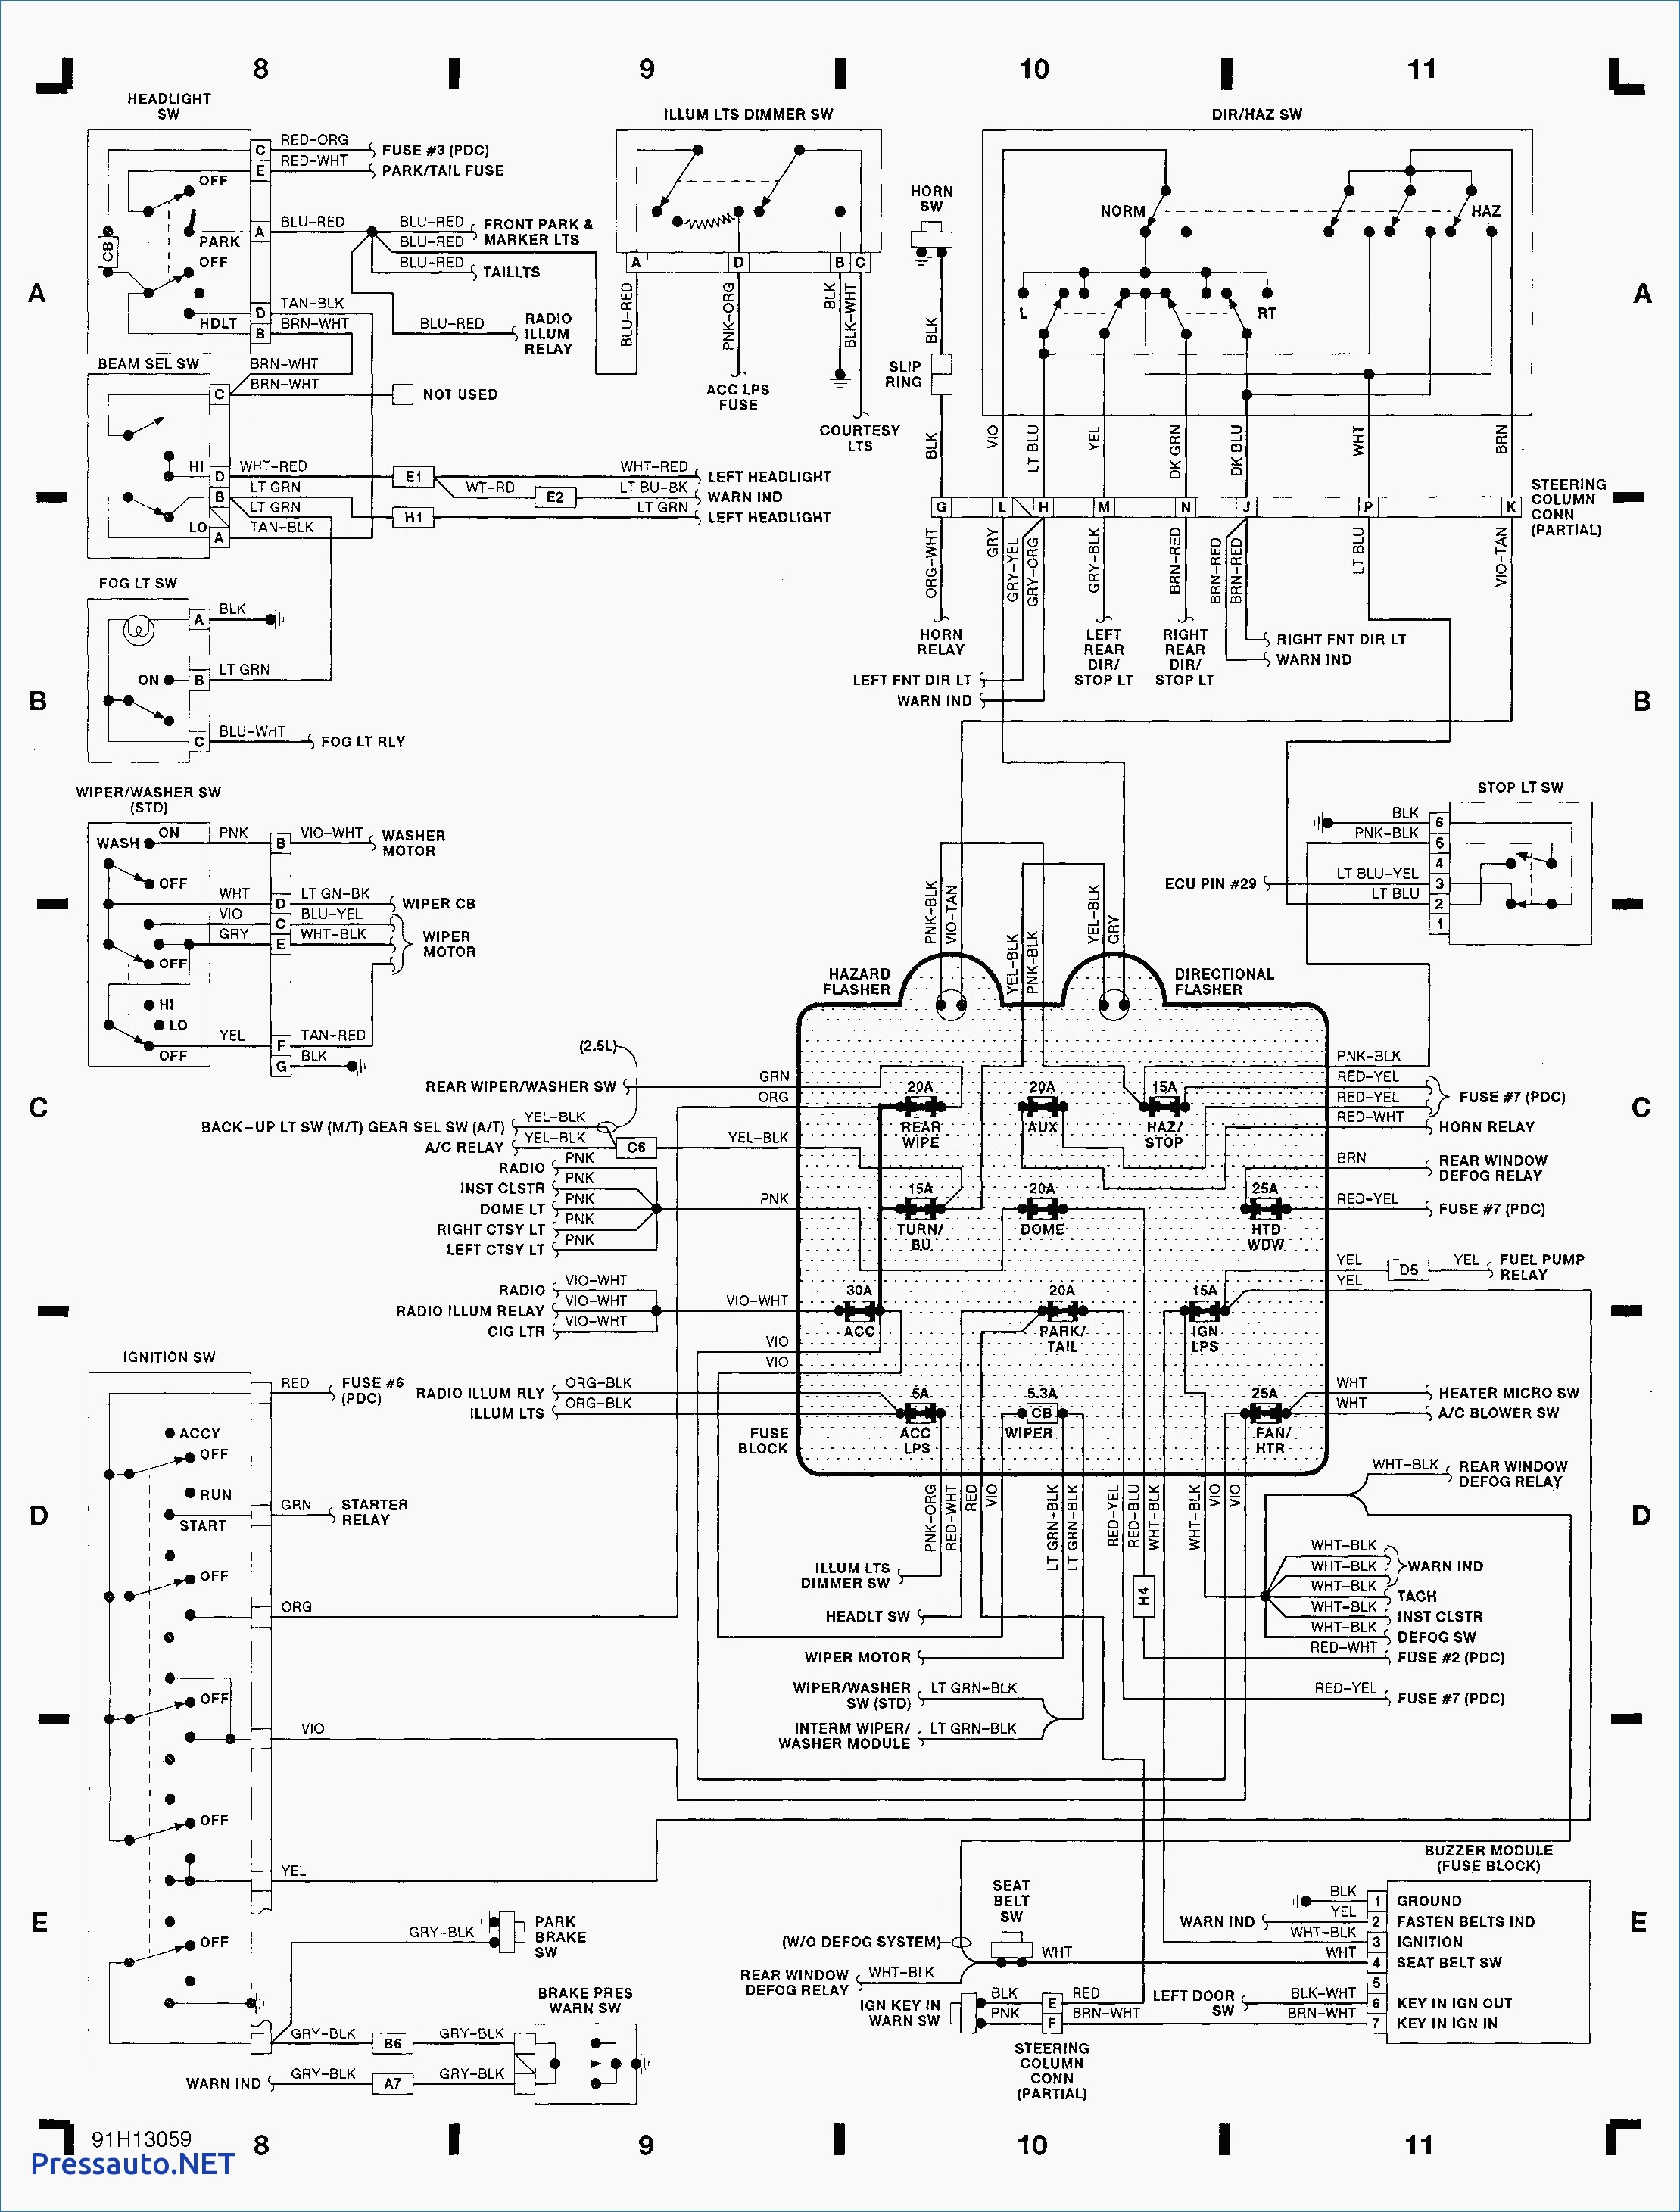 Wabco Abs Schematic